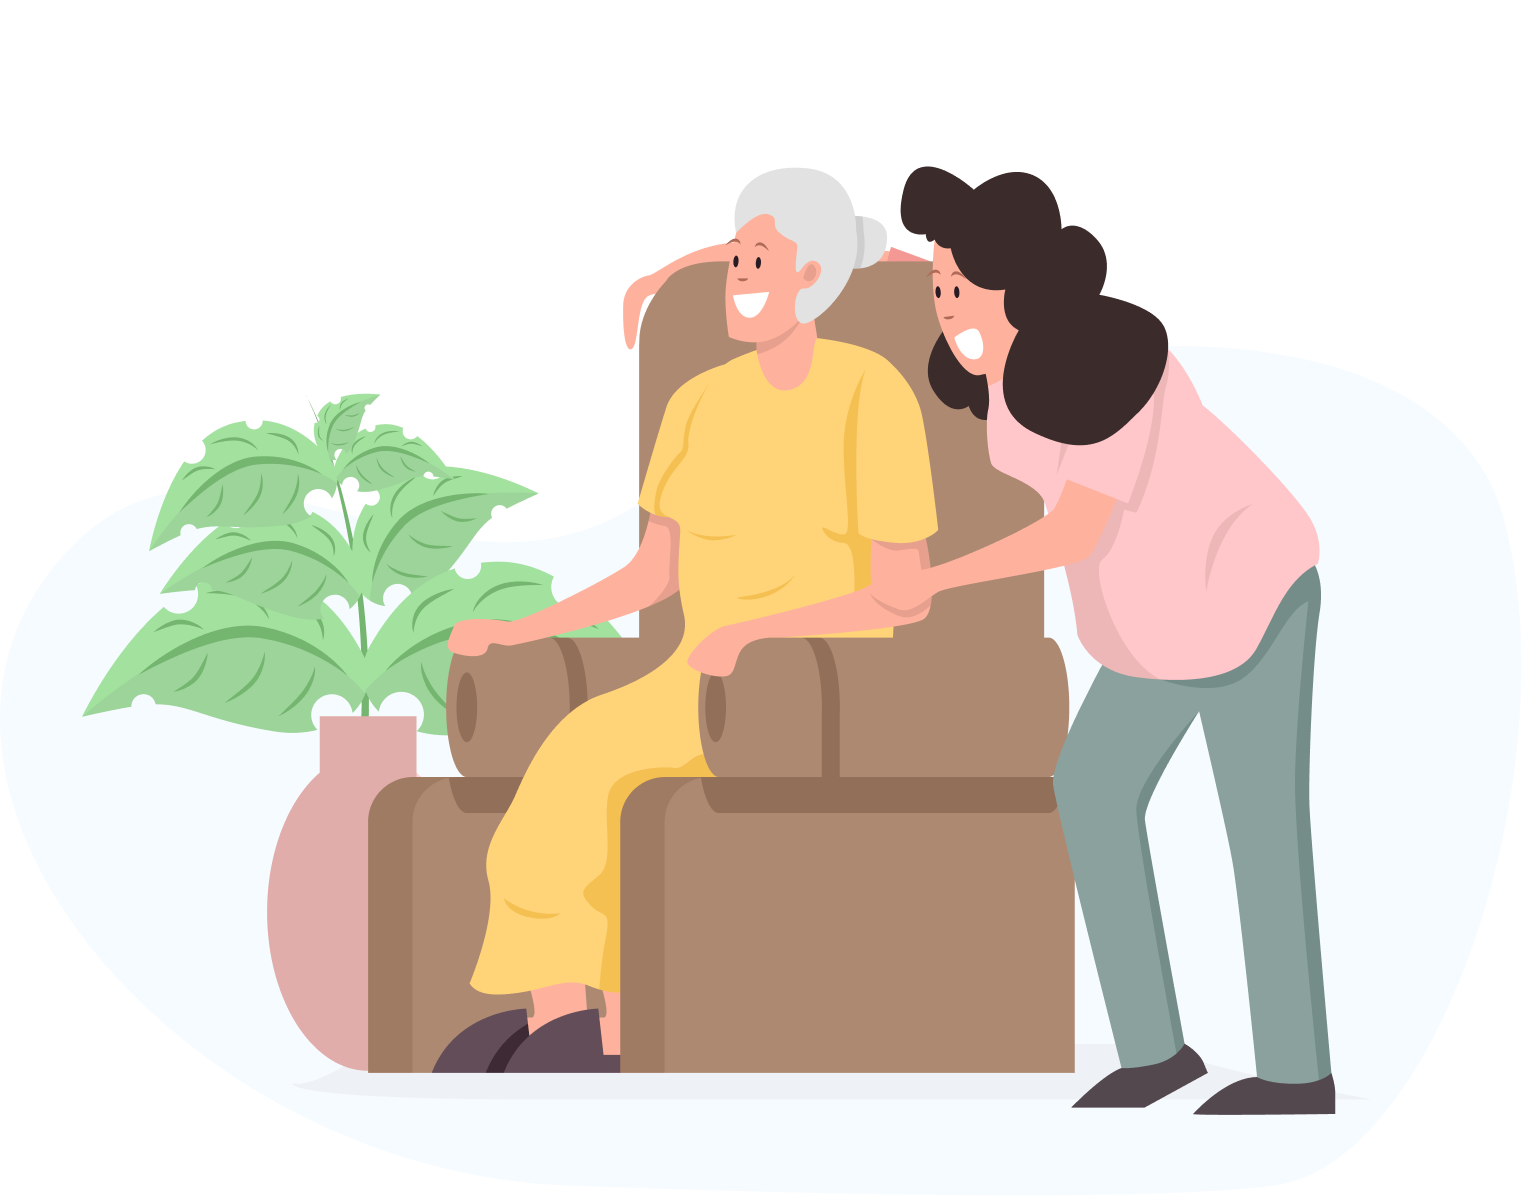 An elderly woman sat in an armchair smiling, with a young woman leaning over her also smiling